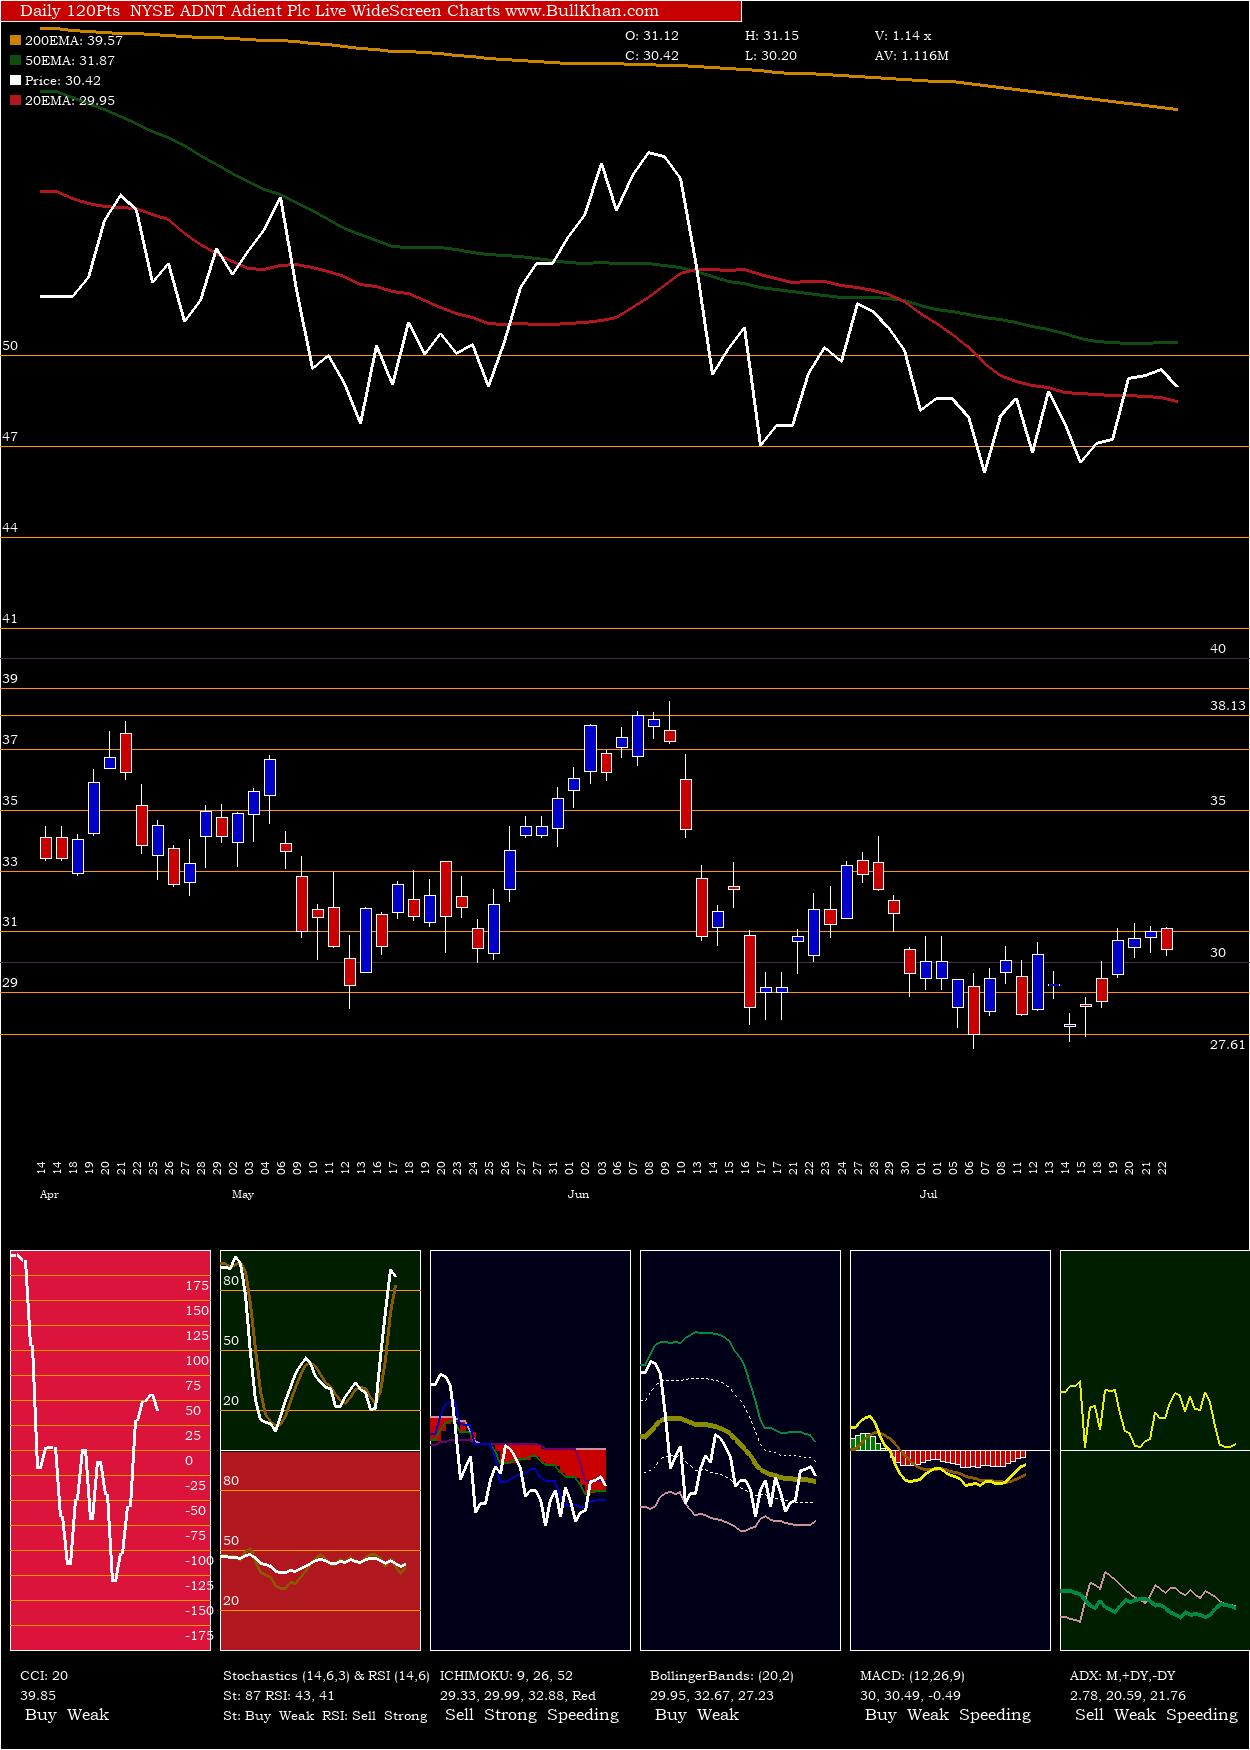 Adient Plc charts and indicators